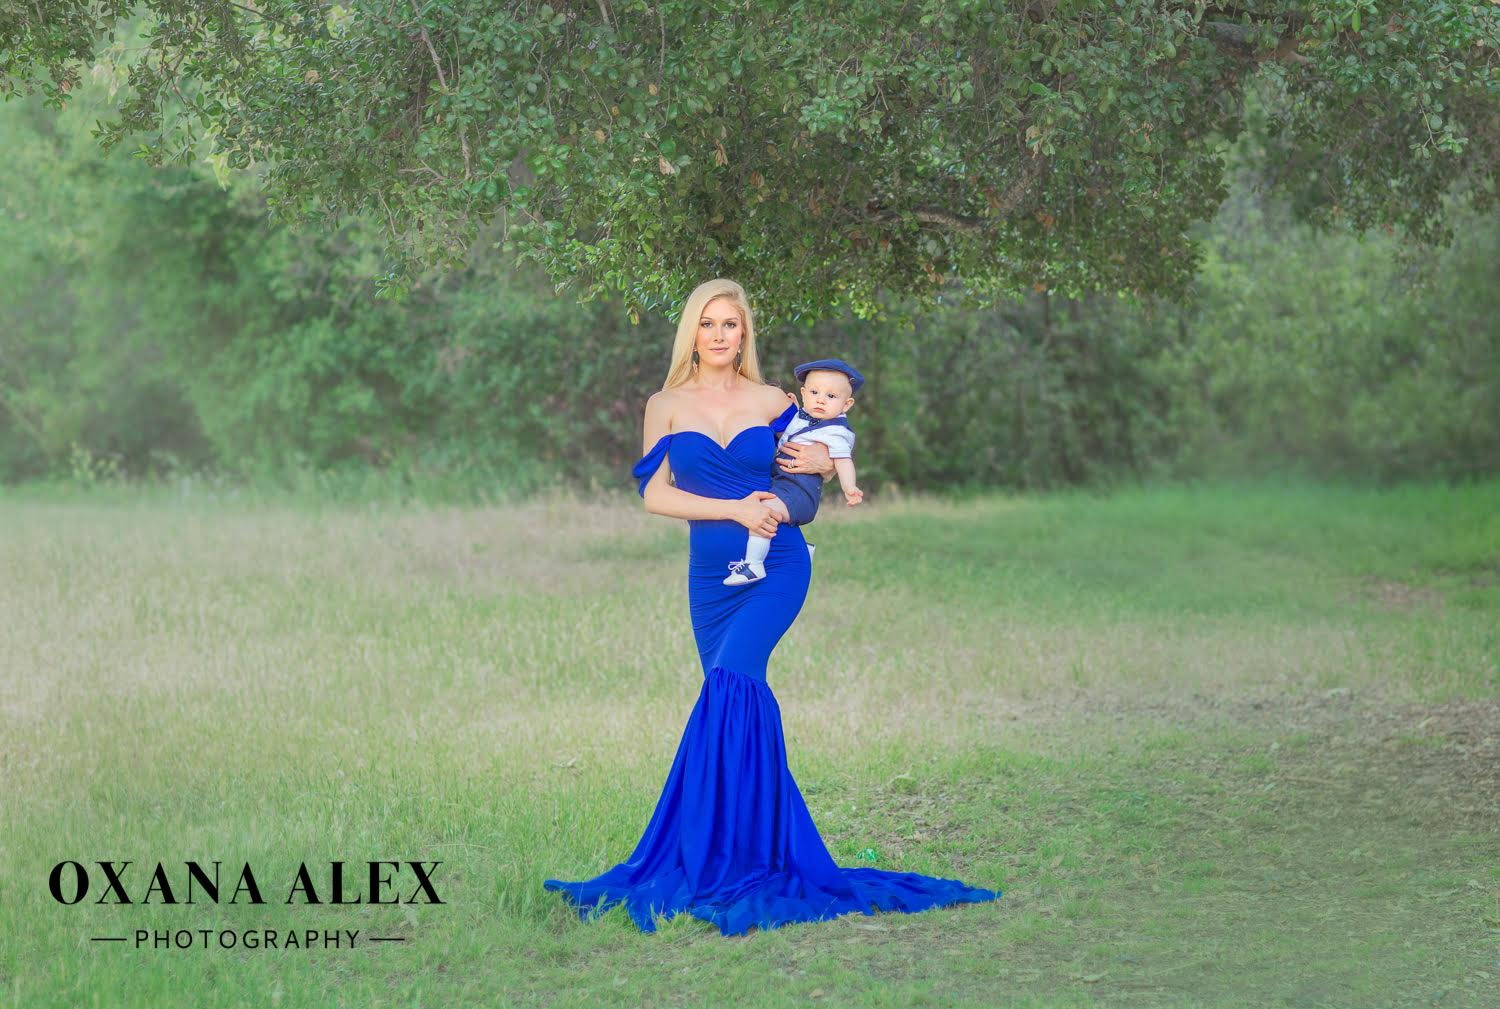 a blonde girl wearing a dark blue dress holding a baby having trees as the background